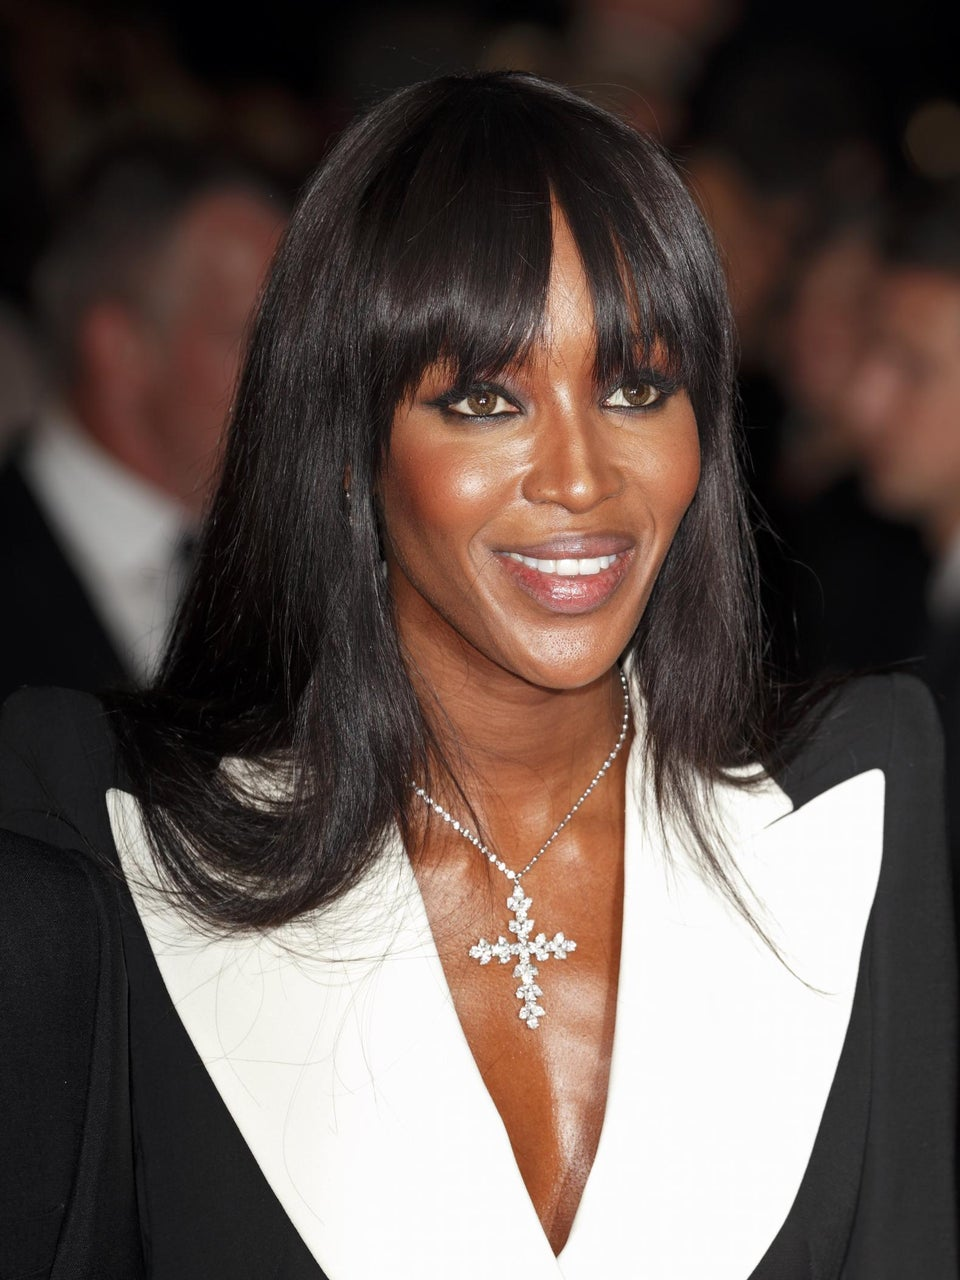 Coffee Talk: Naomi Campbell Allegedly Robbed, Attacked in Paris